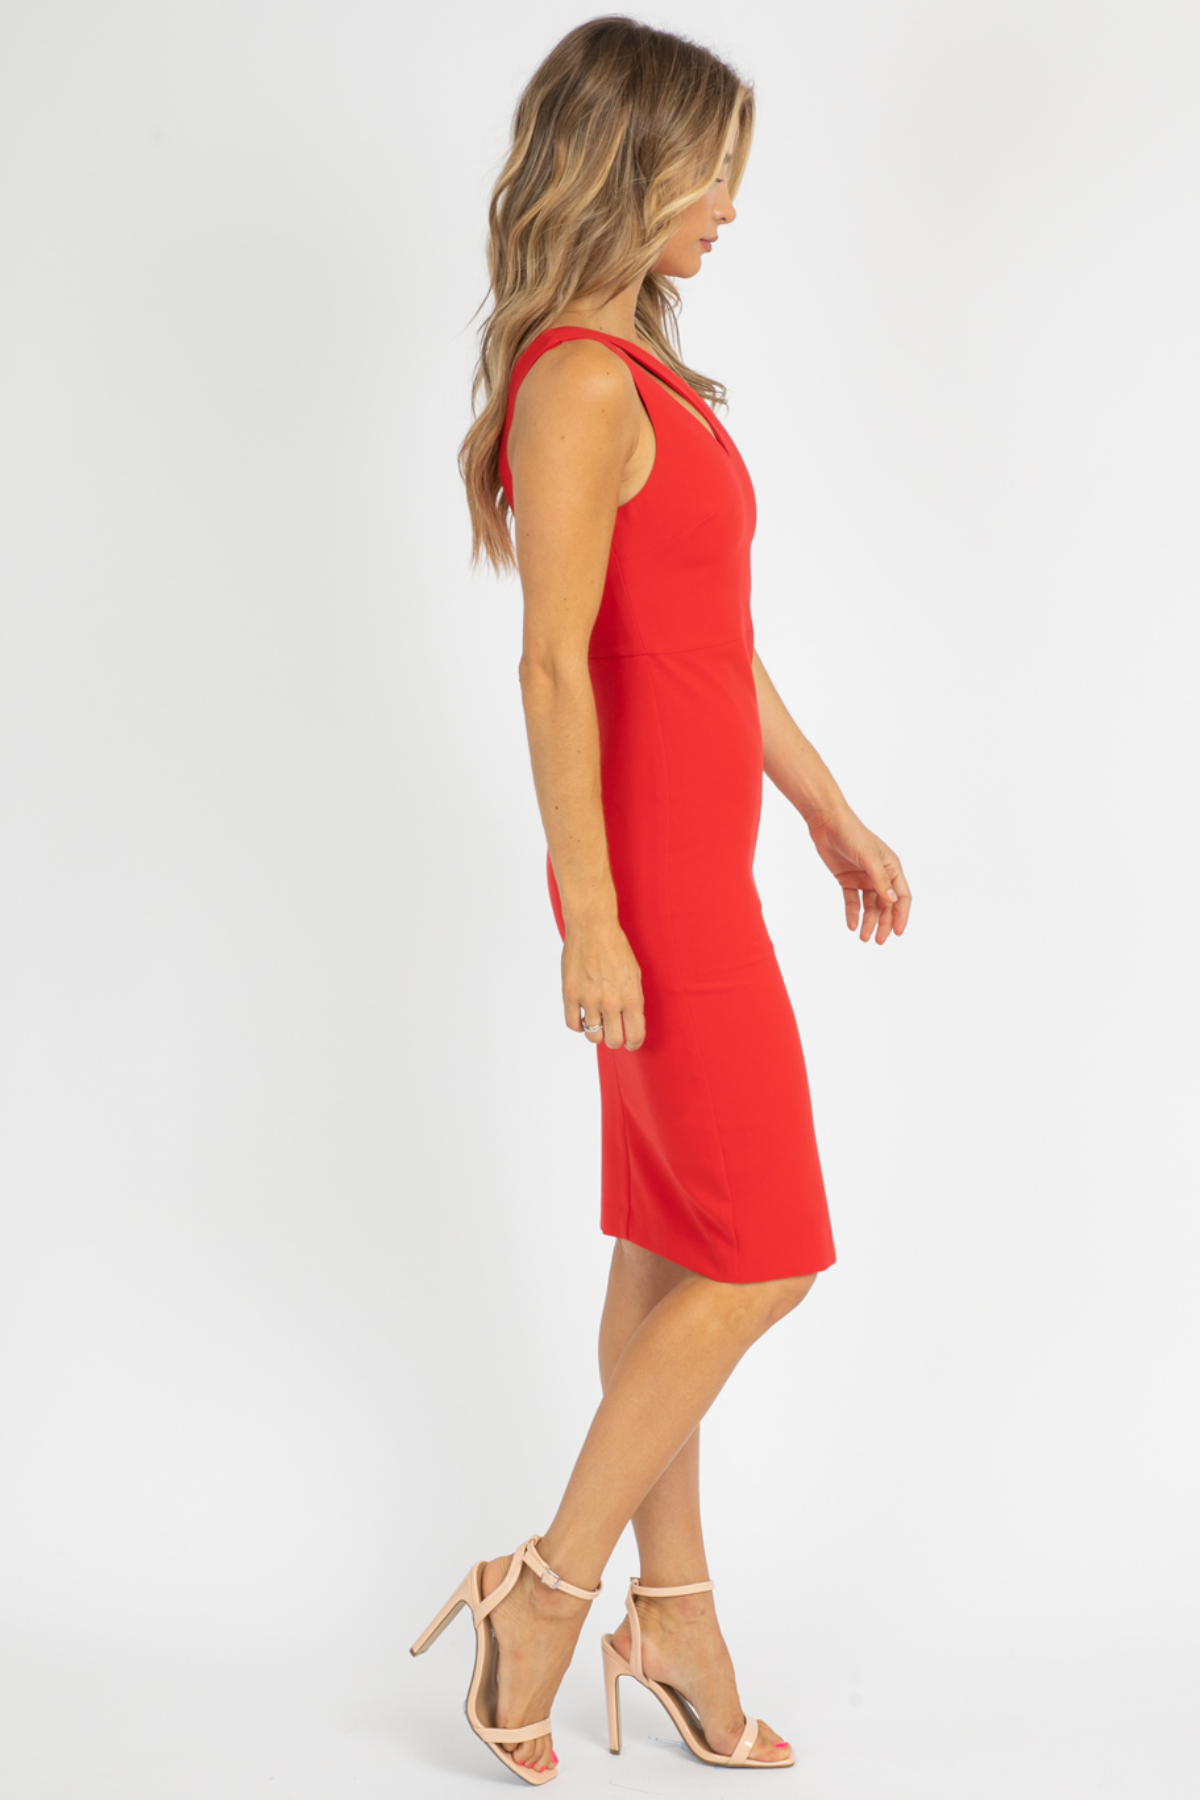 LIKELY LISETTE DRESS IN SCARLET